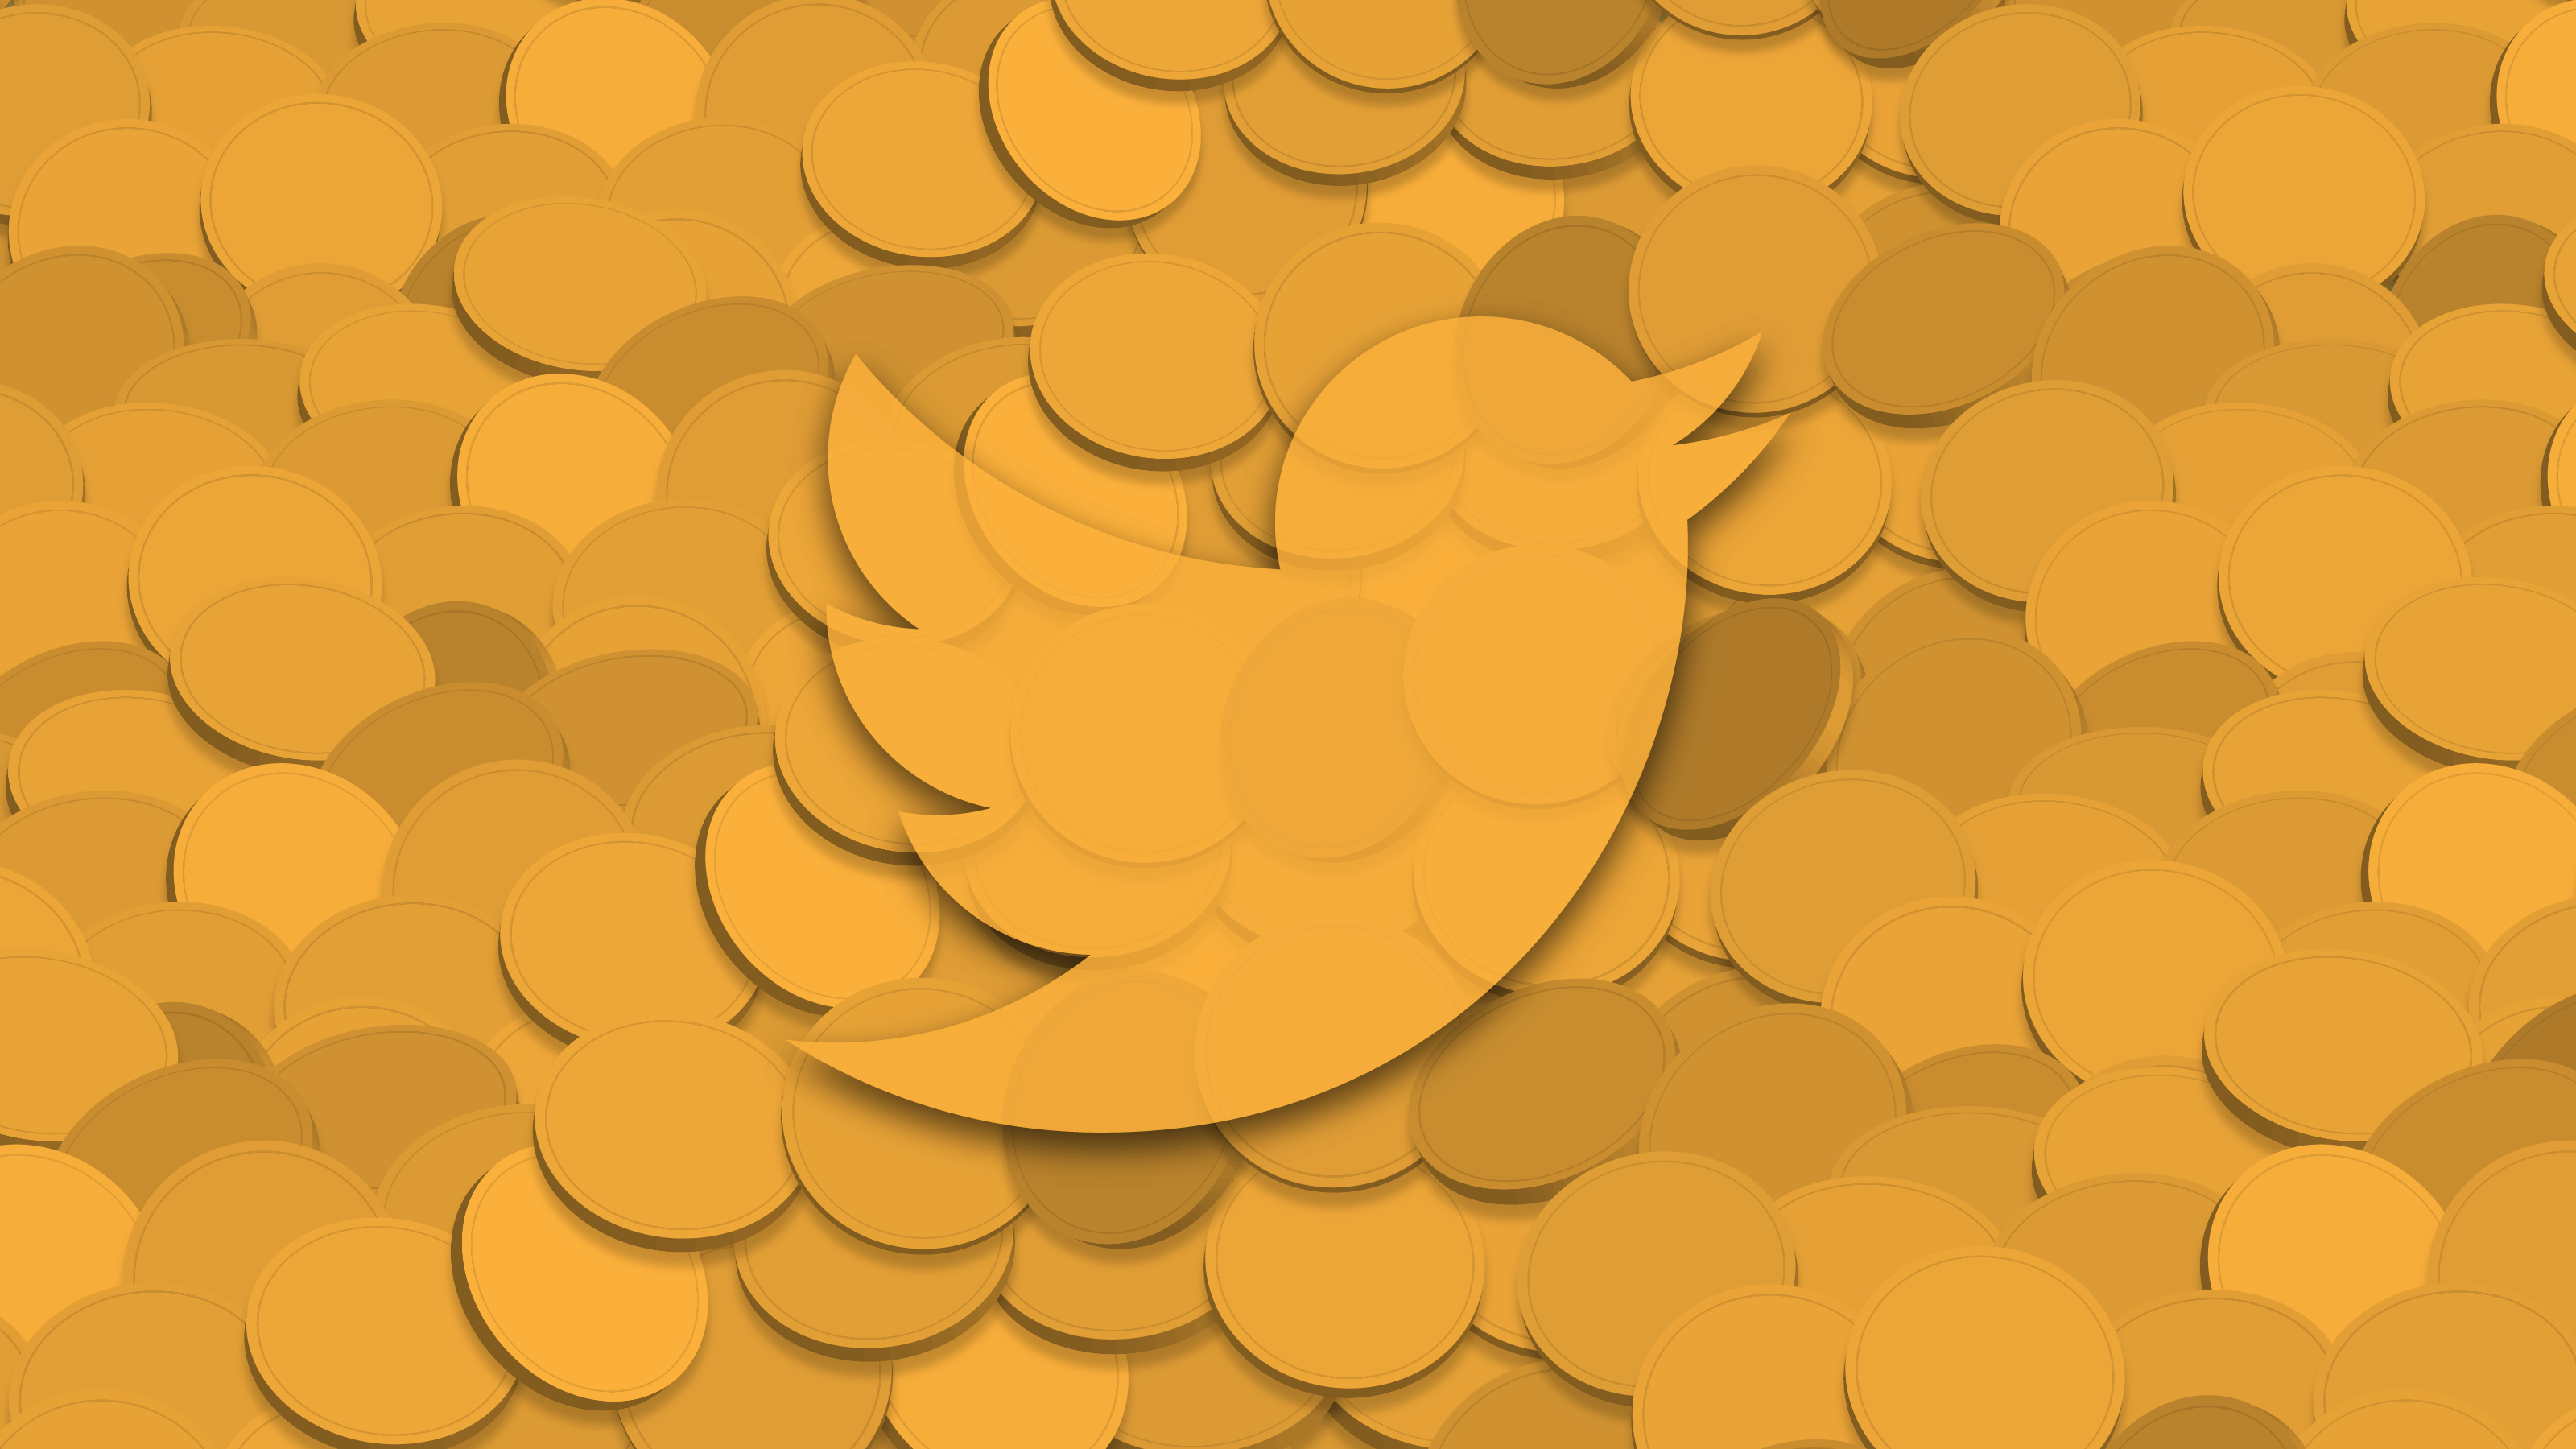 Twitter to ban cryptocurrency ads from Tuesday